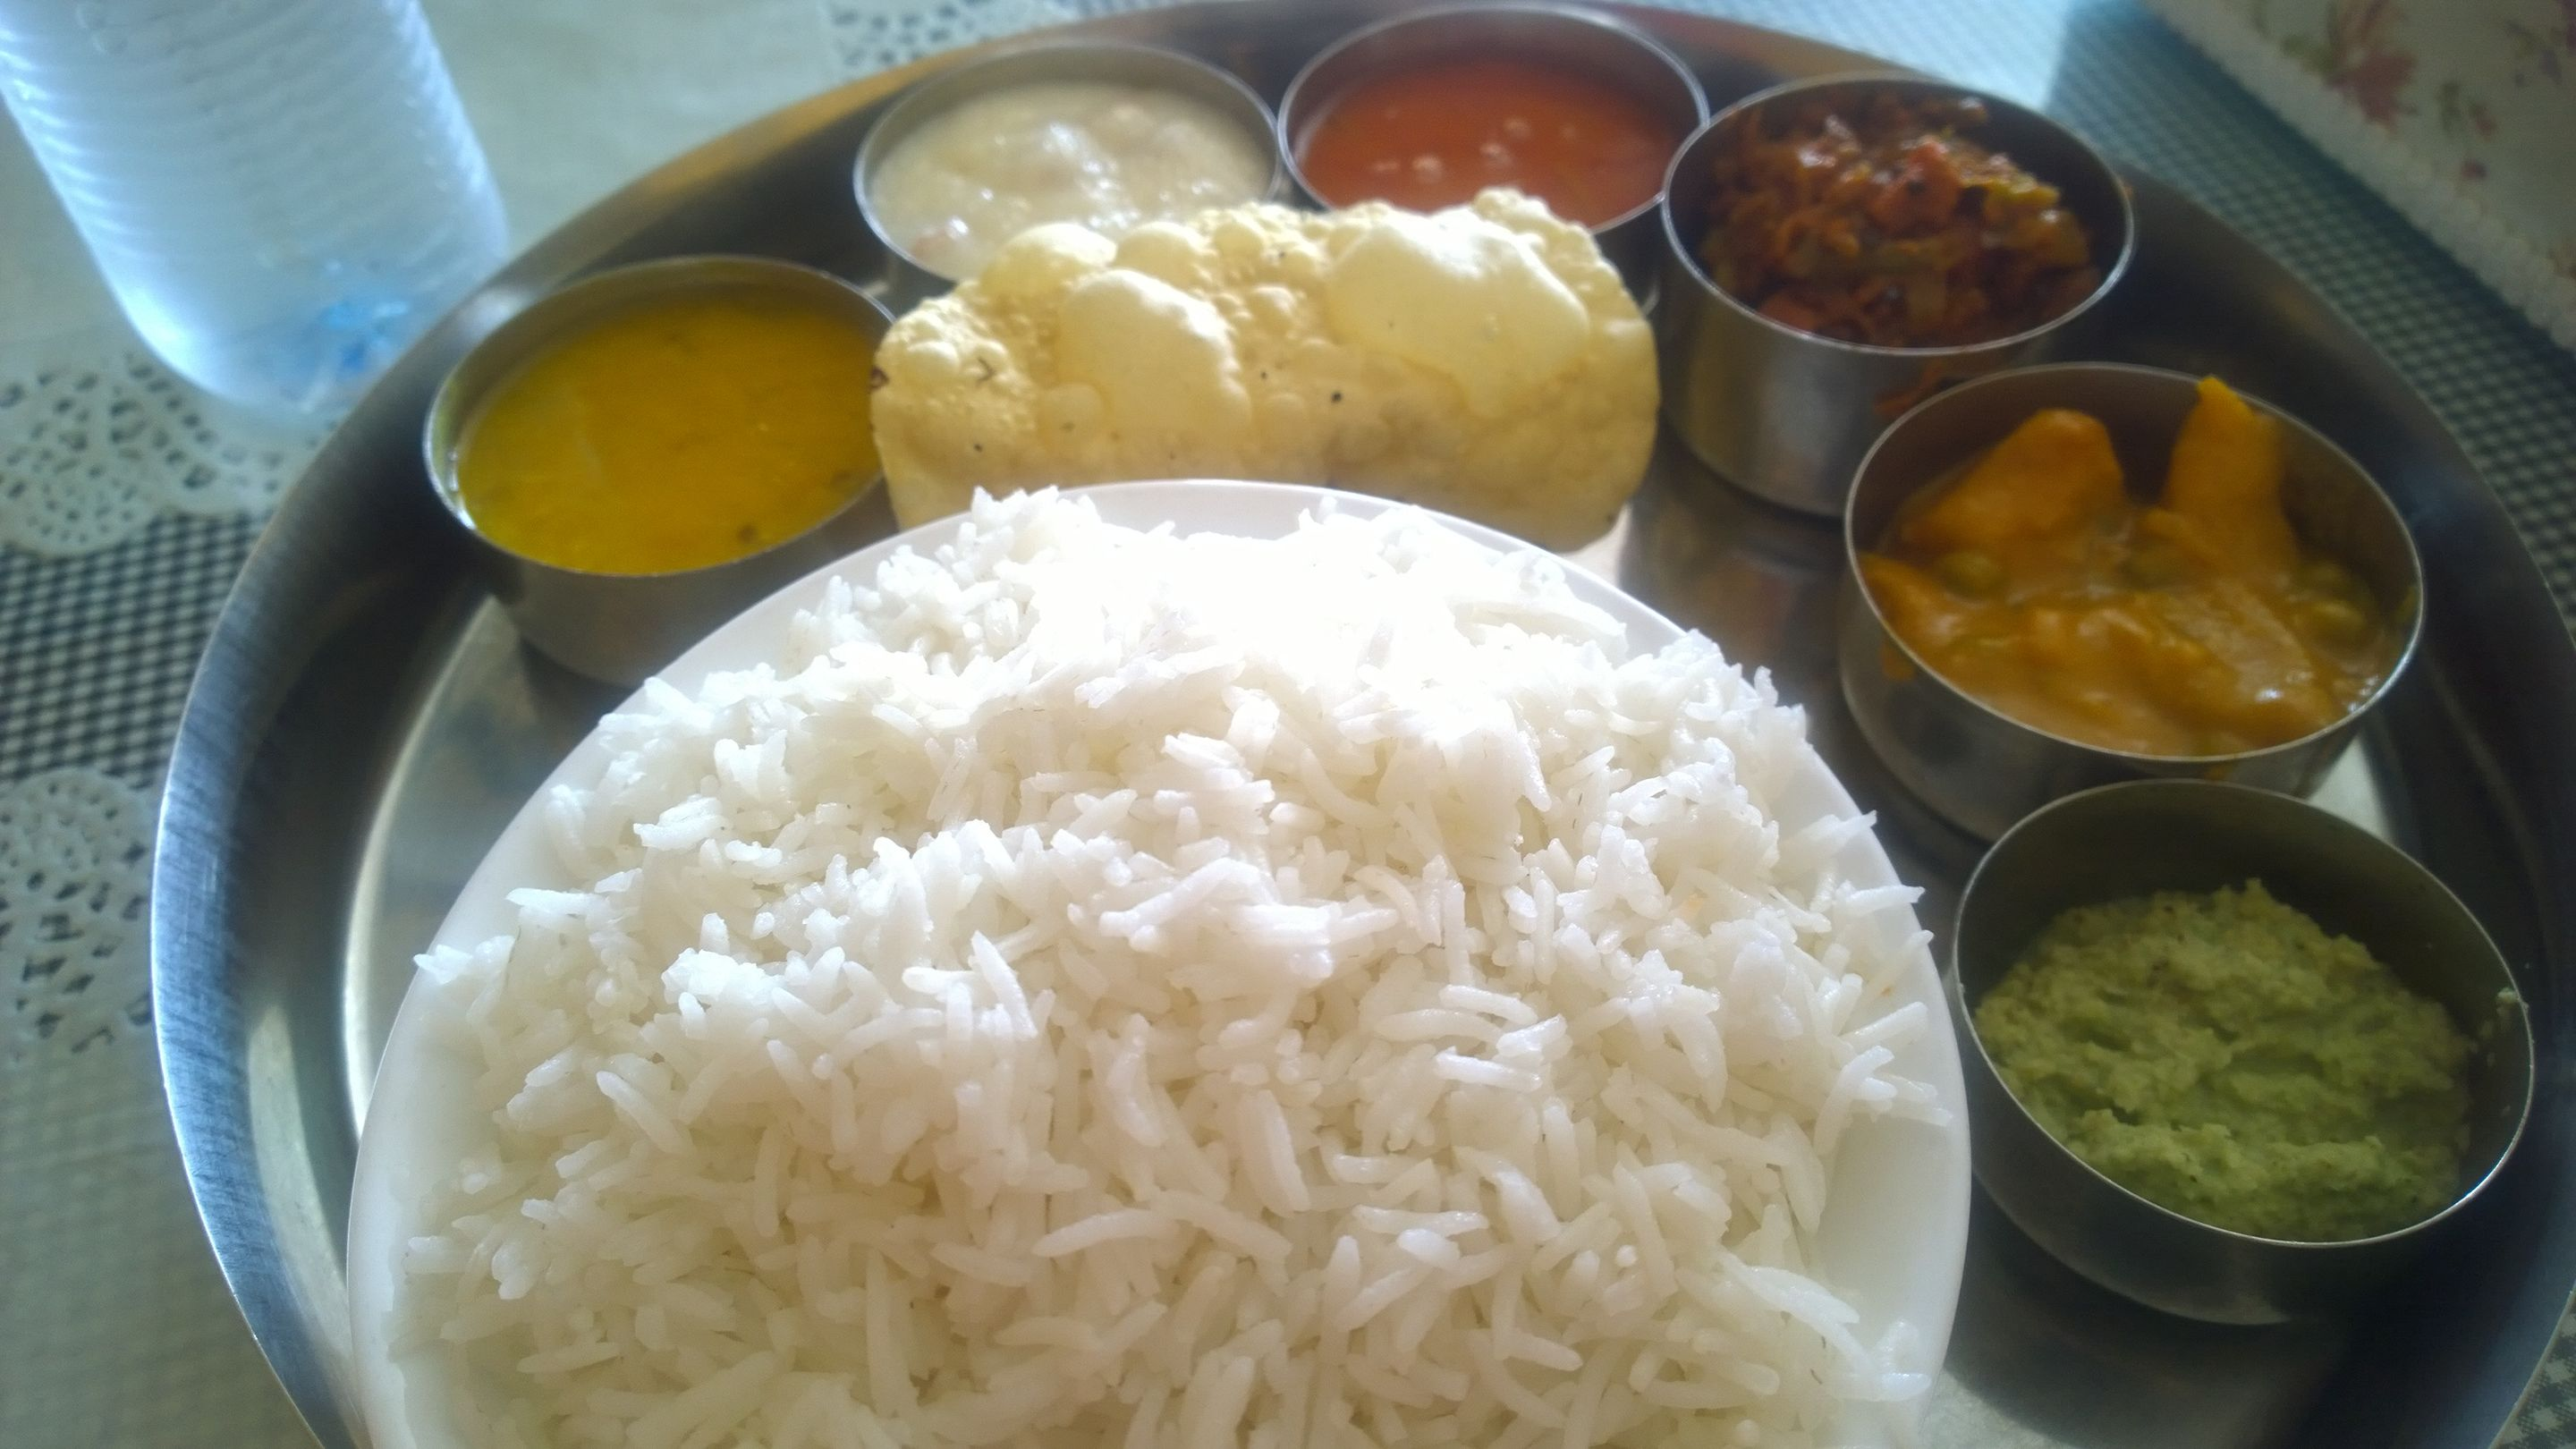 A photograph of a 'thali' with a large plate with many small bowls for dal (pulses), curries, sabzis (dry vegetable dishes), and dahi (curd).